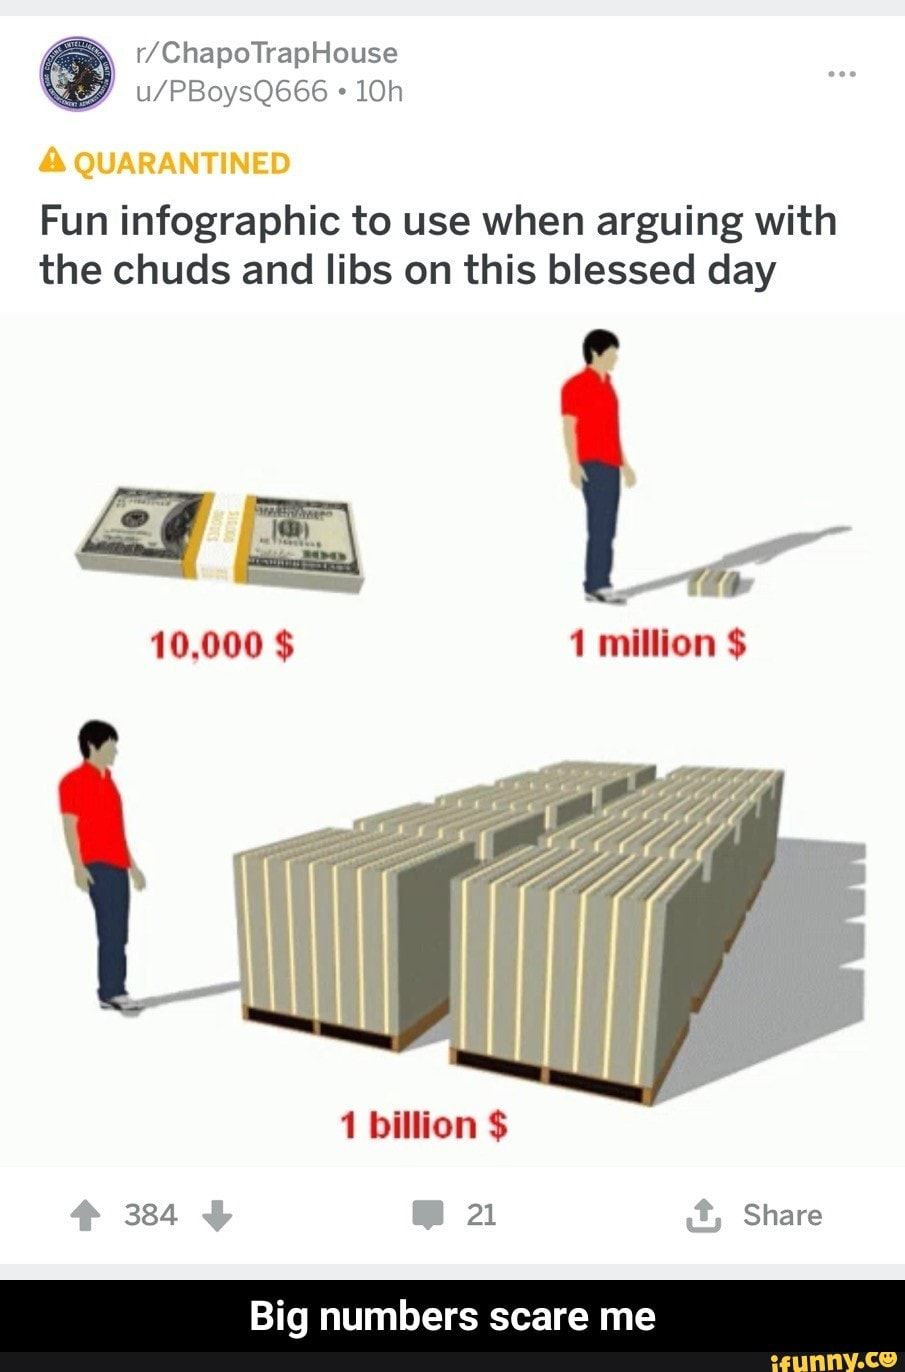 Scare Fun infographic to use when arguing with the chuds